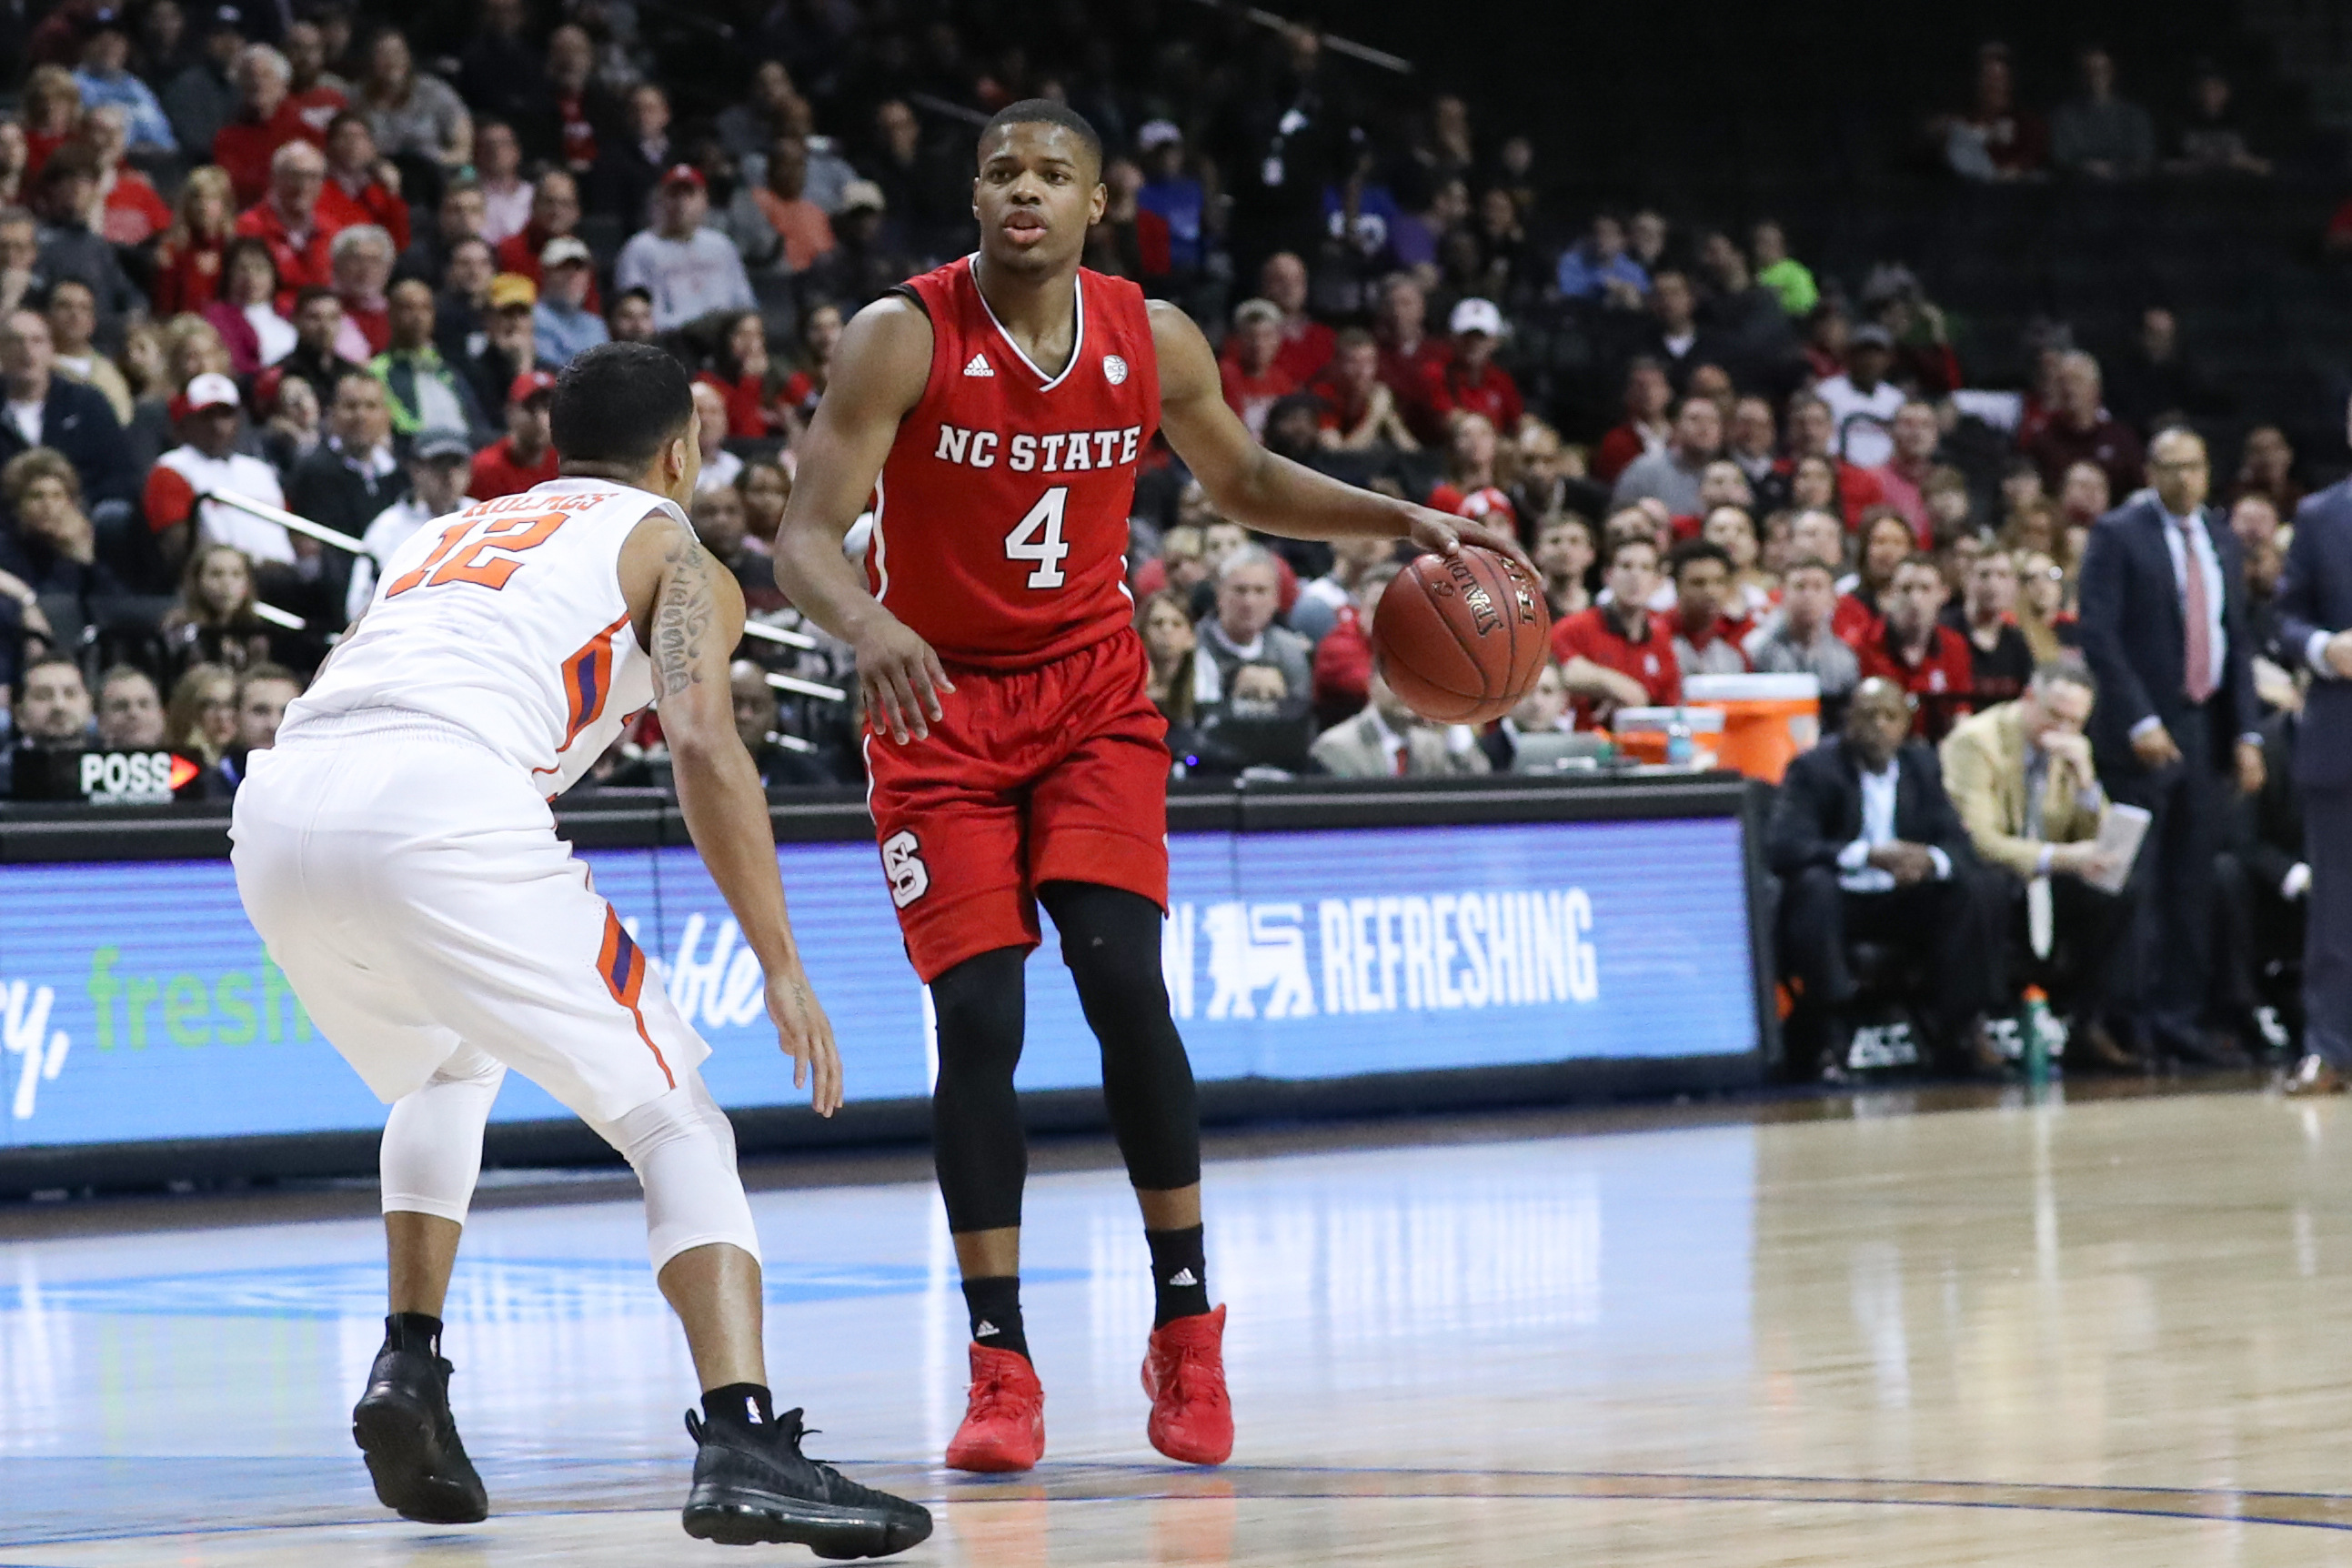 9924330-ncaa-basketball-acc-conference-tournament-clemson-vs-nc-state-2